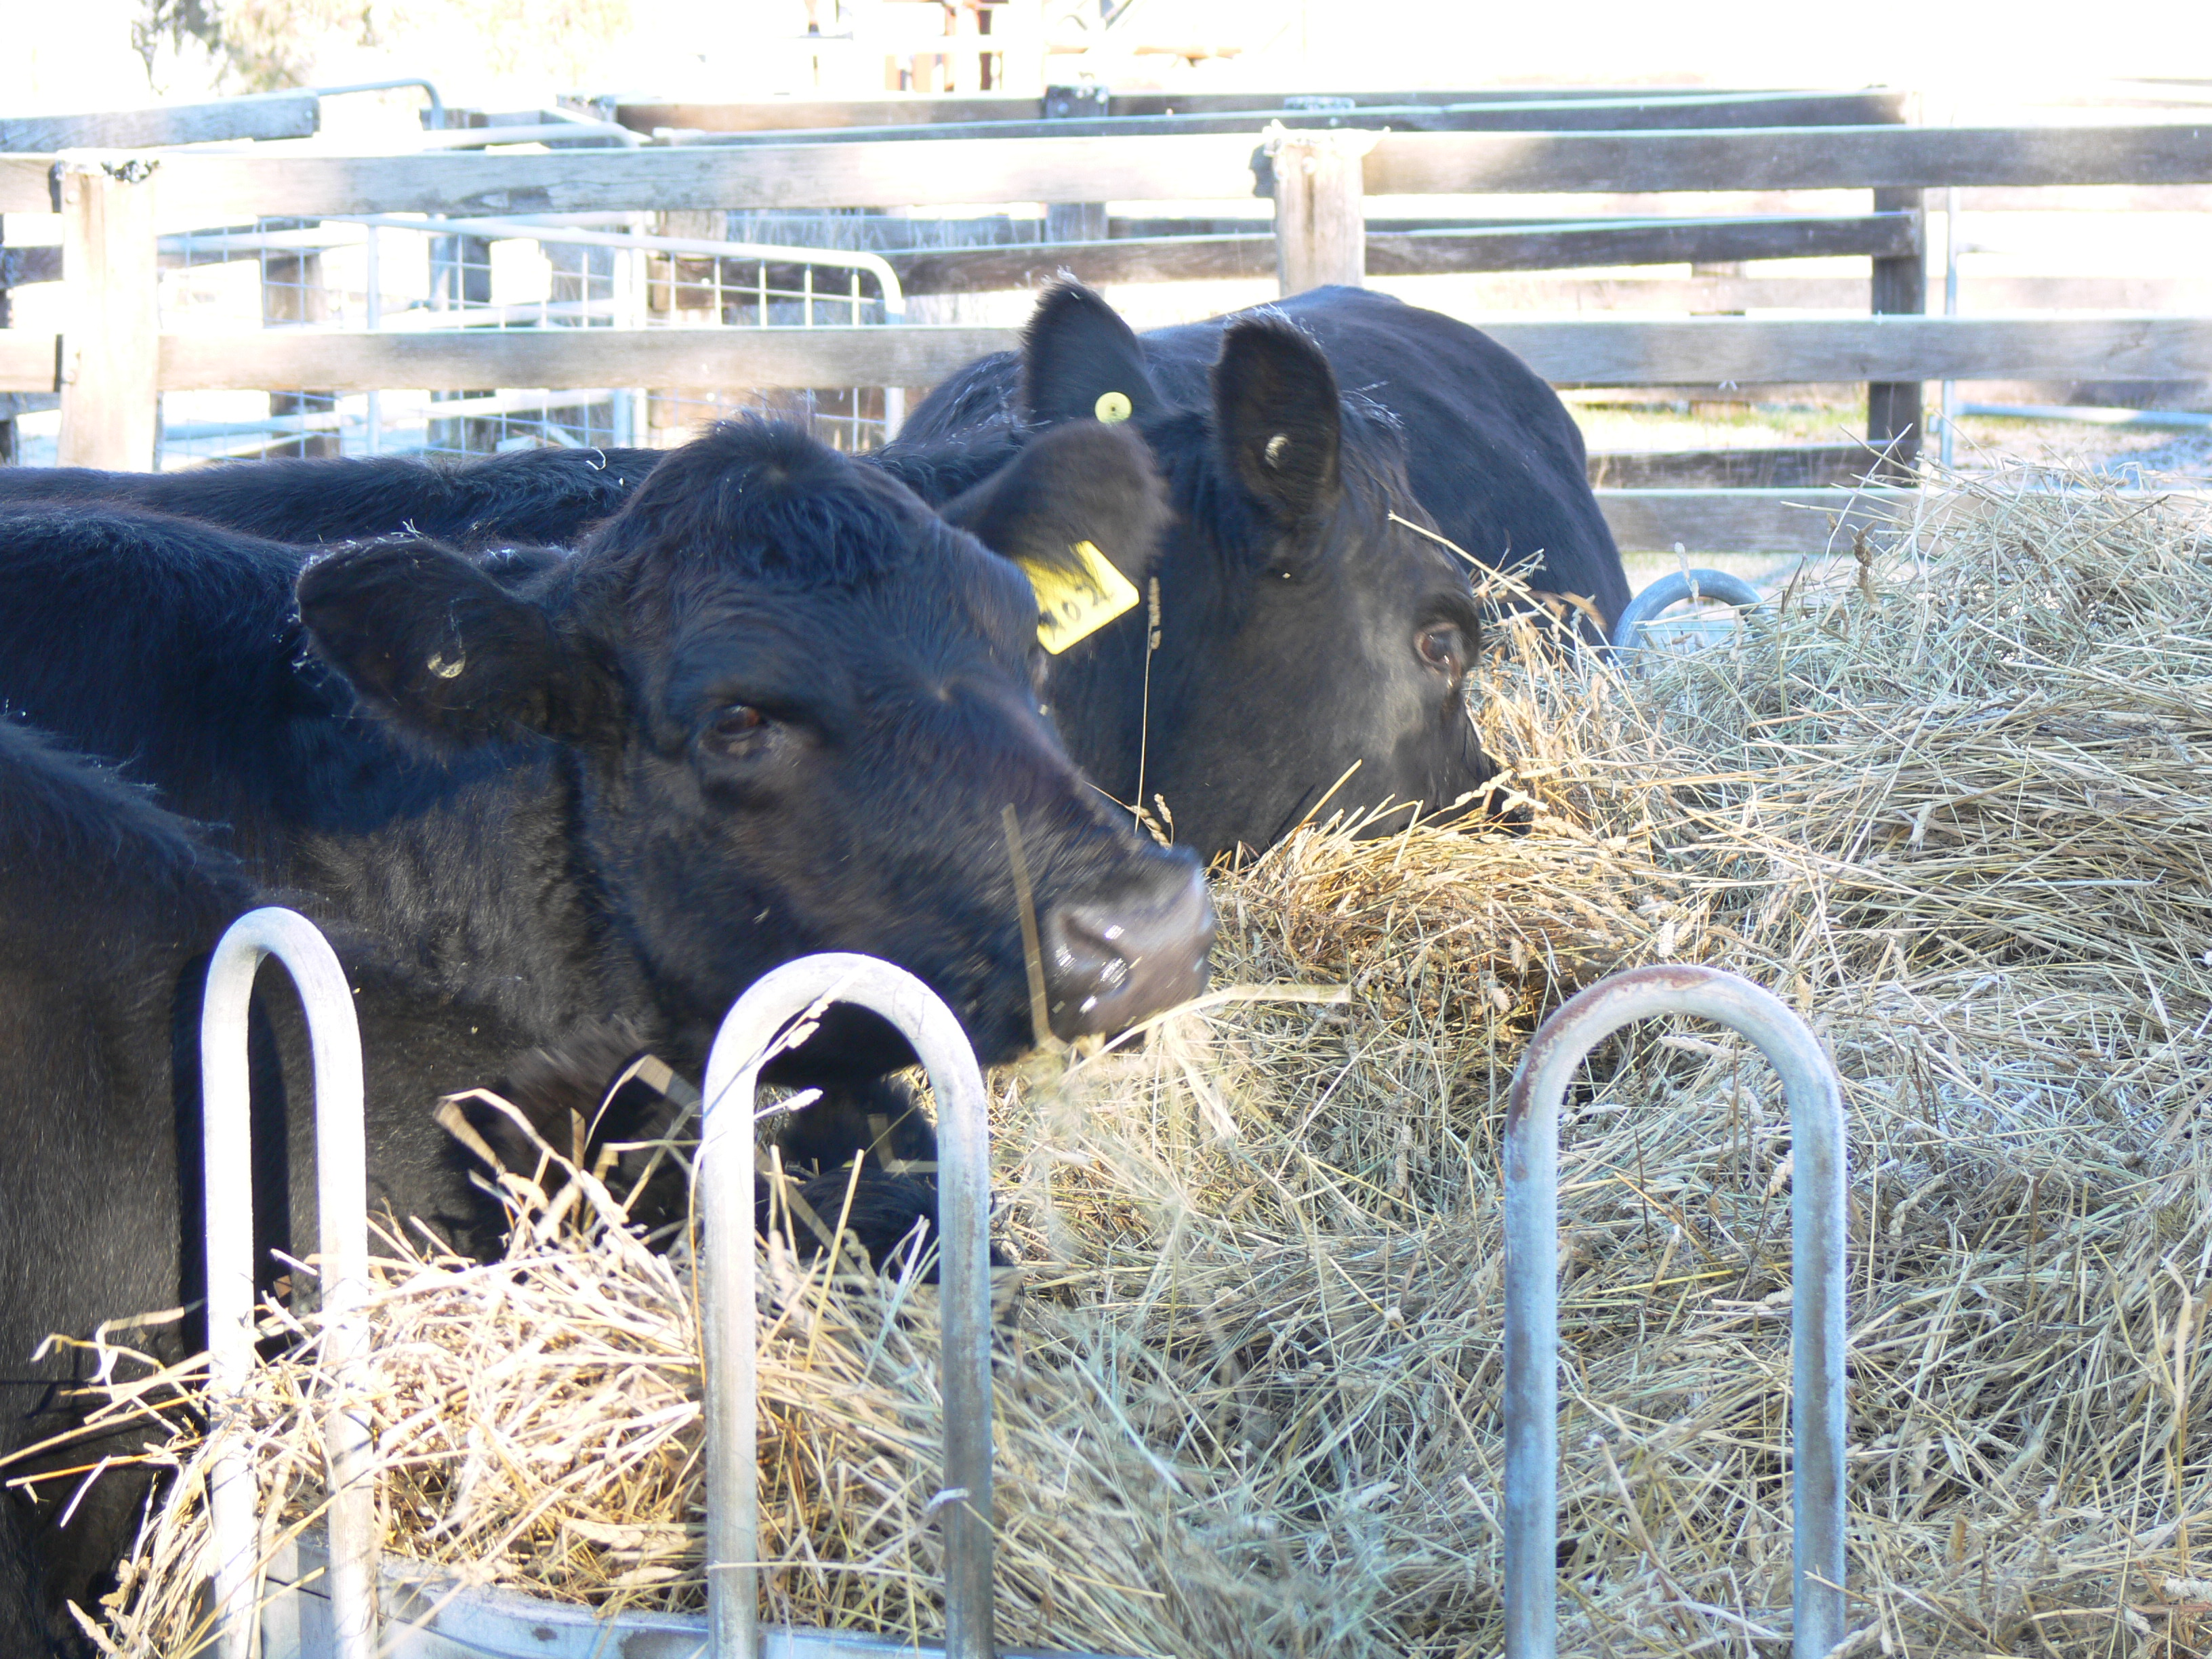 22 Cattle in yards